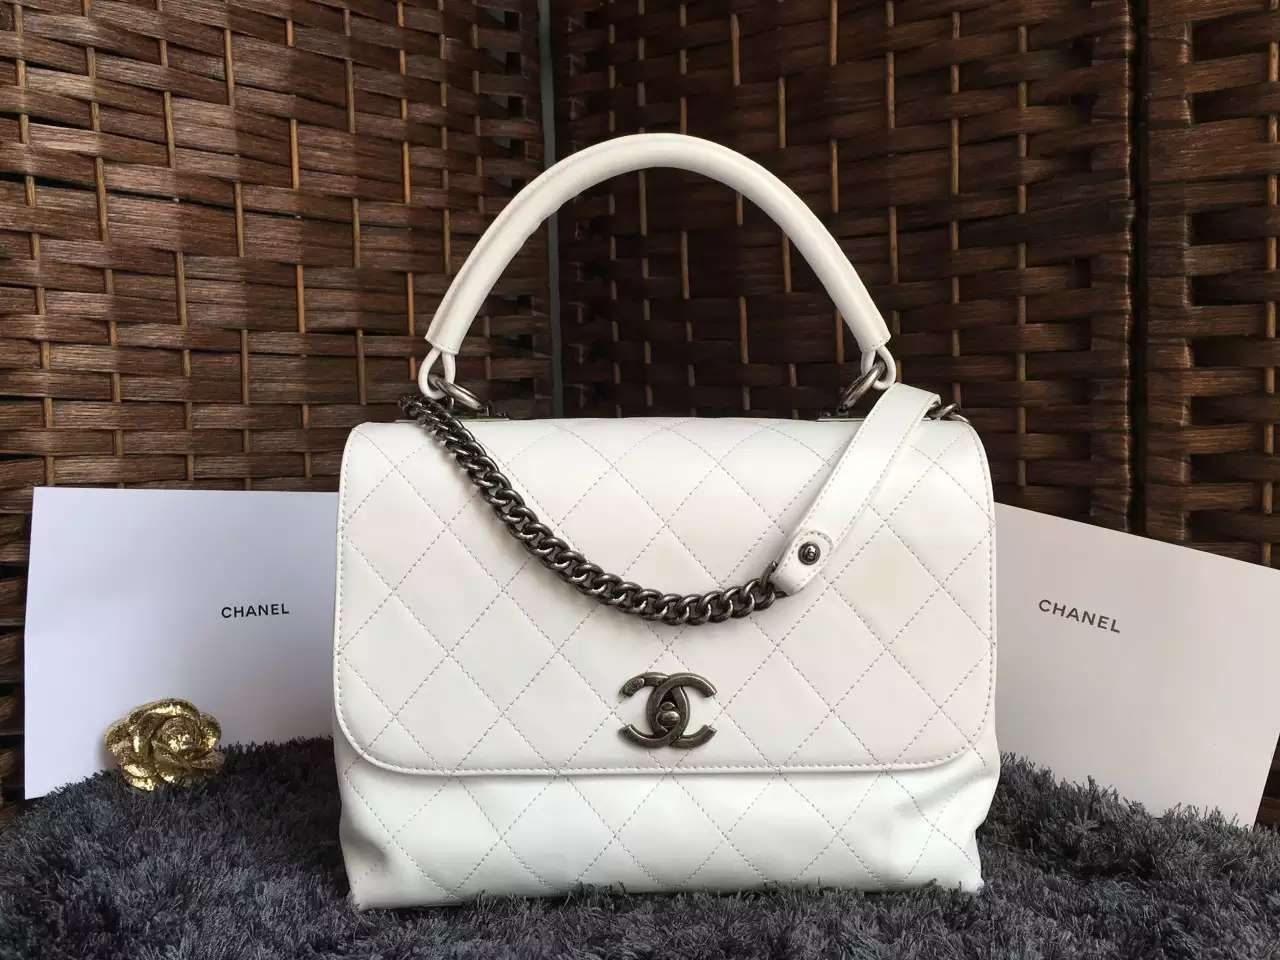 chanel Bag, ID : 48383(FORSALE:a@yybags.com), chanel cute cheap backpacks, chanel girl, chanel purses for sale, chanel handbag purse, chanel top designer handbags, chanel bags online cheap, chanel kids backpacks, chanel purse shopping, official chanel, chanel luxury wallets, chanel designer handbags cheap, chanel com, chanel boutique label #chanelBag #chanel #chanel #bags